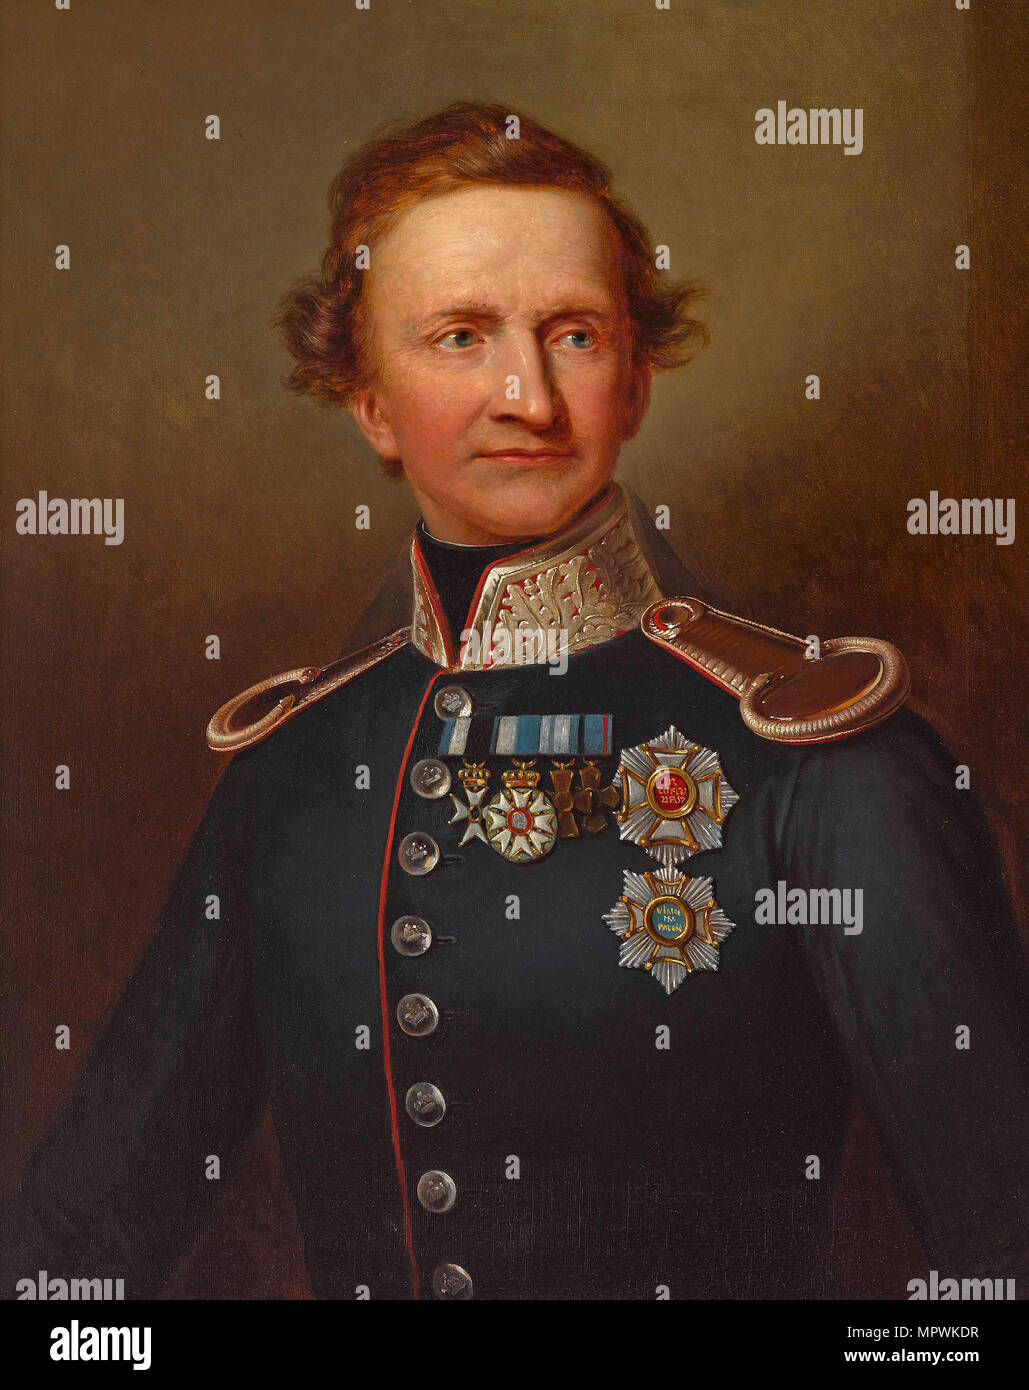 Portrait of Ludwig I of Bavaria (1786-1868). Stock Photo